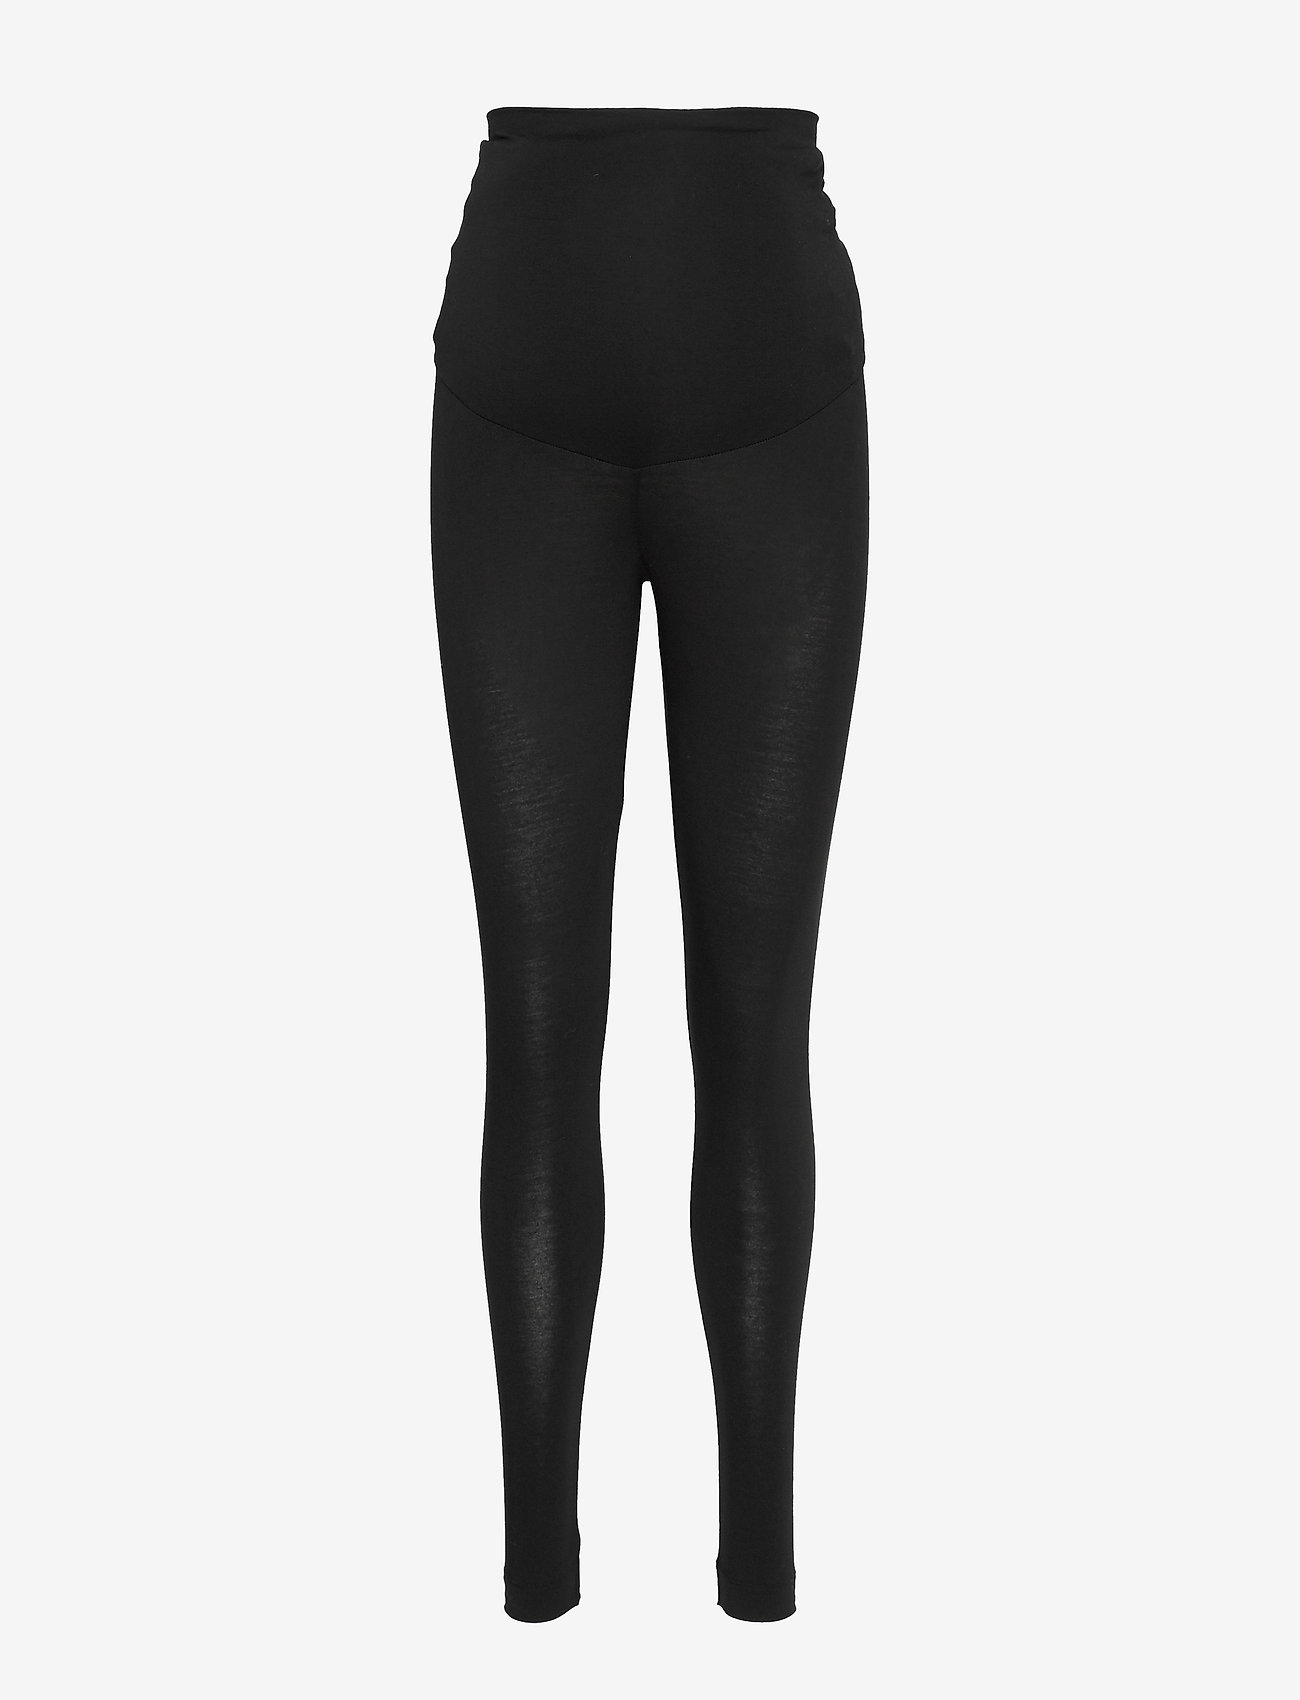 Boob - Once-on-never-off leggings - leggings - black - 0